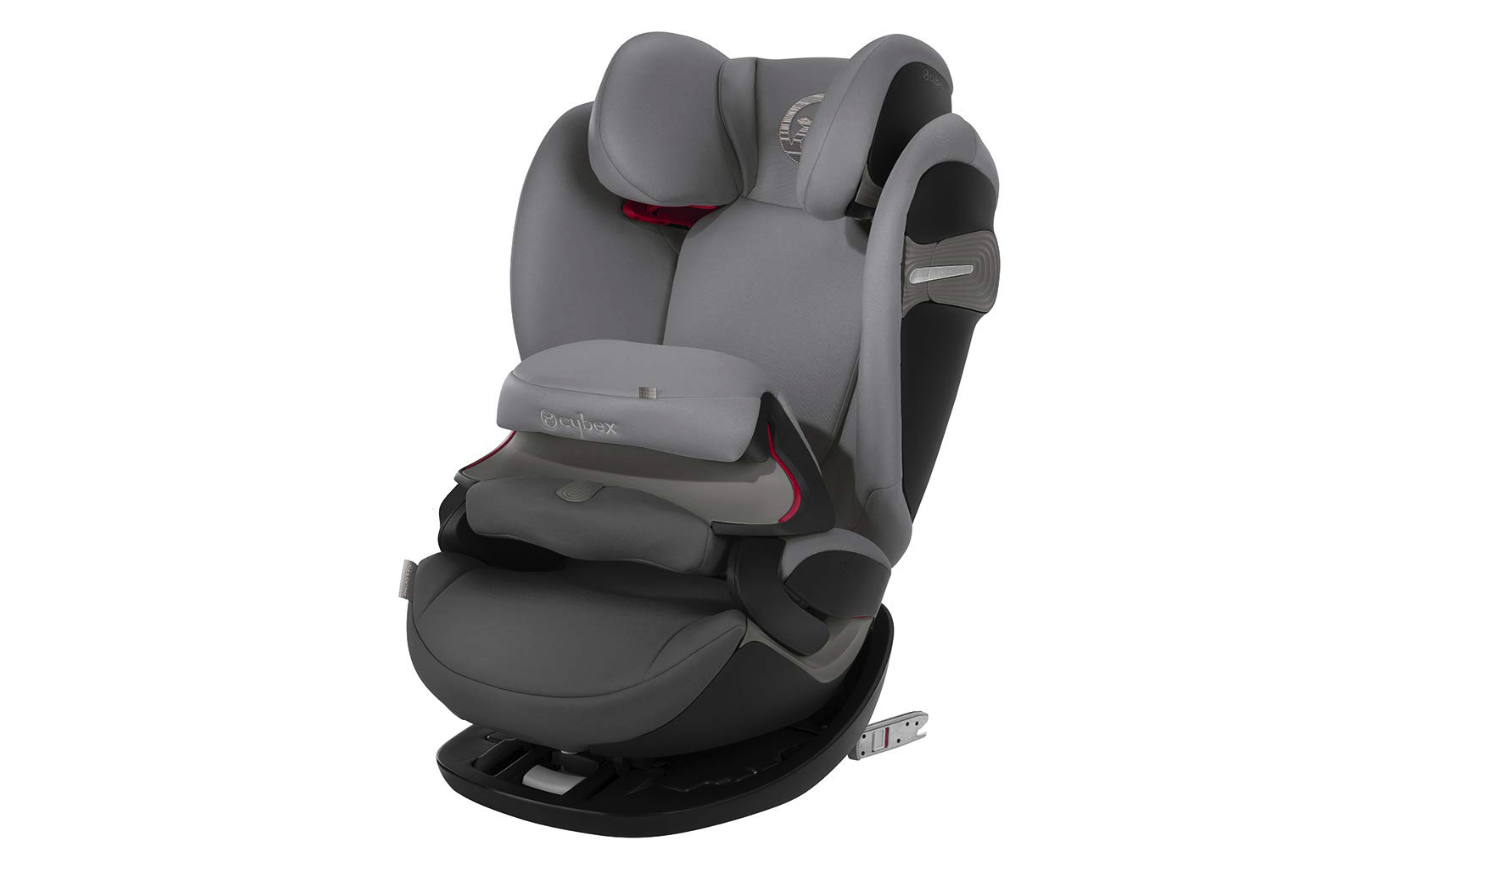 2a188fb9c The Cybex Pallas S-Fix is unlike the majority of car seats on the market.  It swaps the five-point harness – which any parent will tell you can be  fiddly to ...